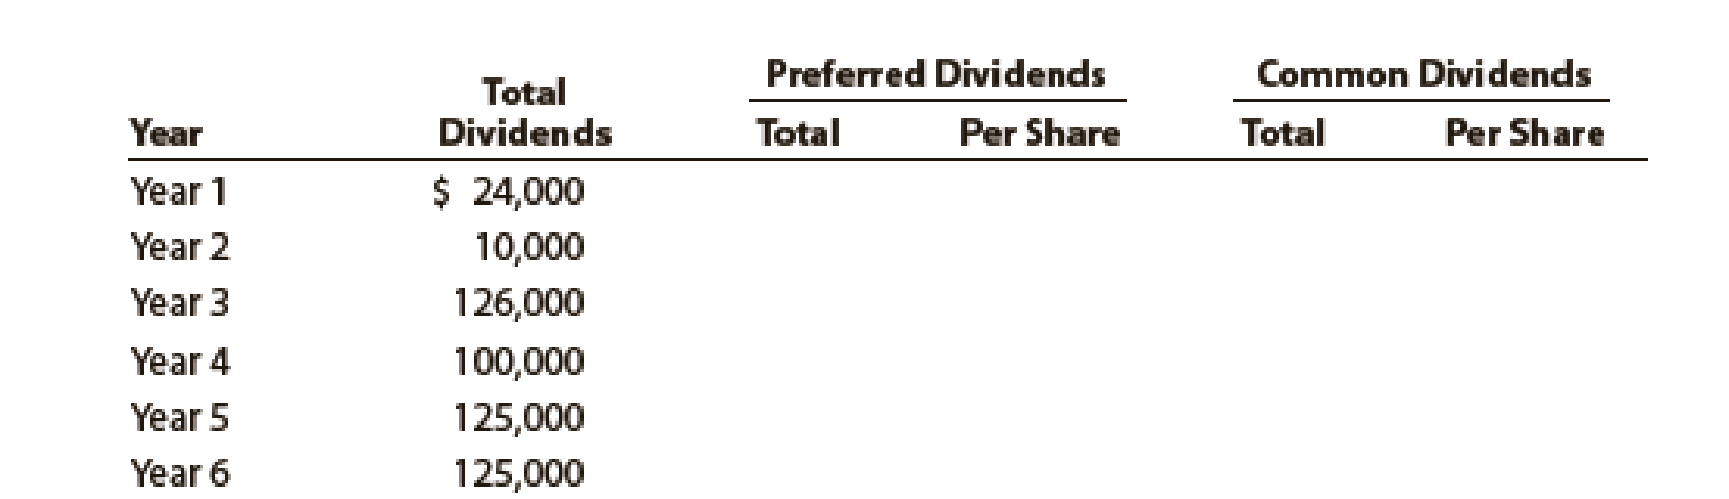 Chapter 13, Problem 1PB, Dividends on preferred and common stock Yosemite Bike Corp. manufactures mountain bikes and